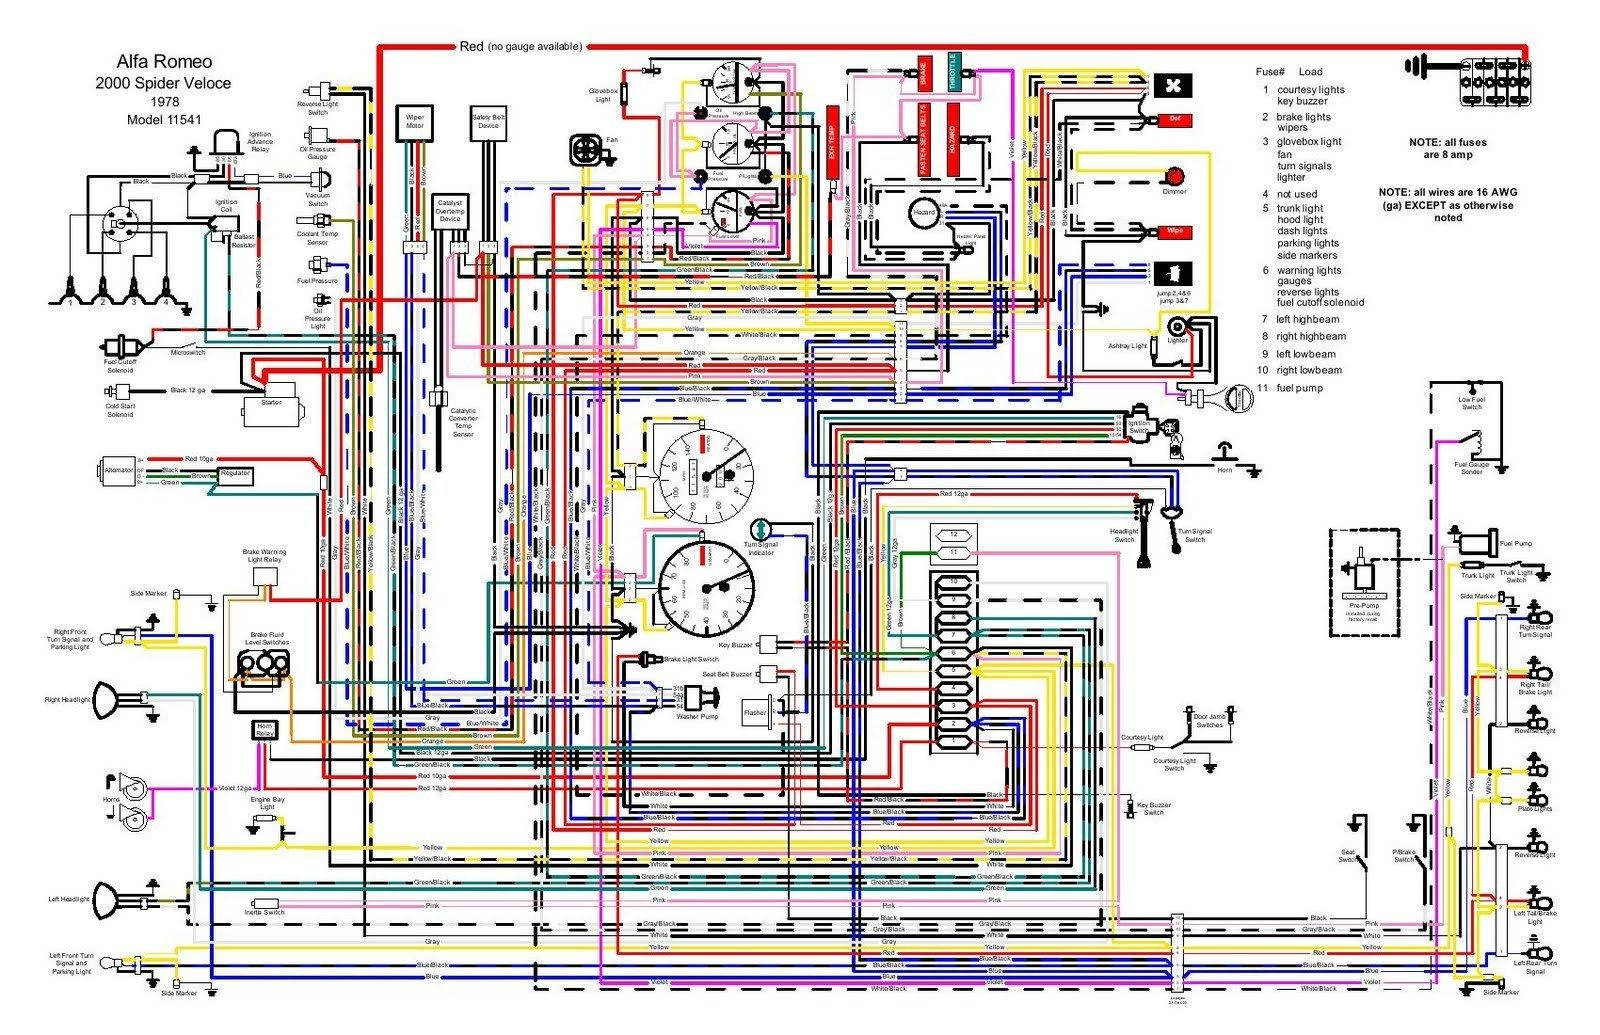 Auto Electrical Wiring Schematic Database 0 Hastalavista For Auto Electrical Schematic Electrical Wiring Diagram Electrical Diagram Trailer Wiring Diagram